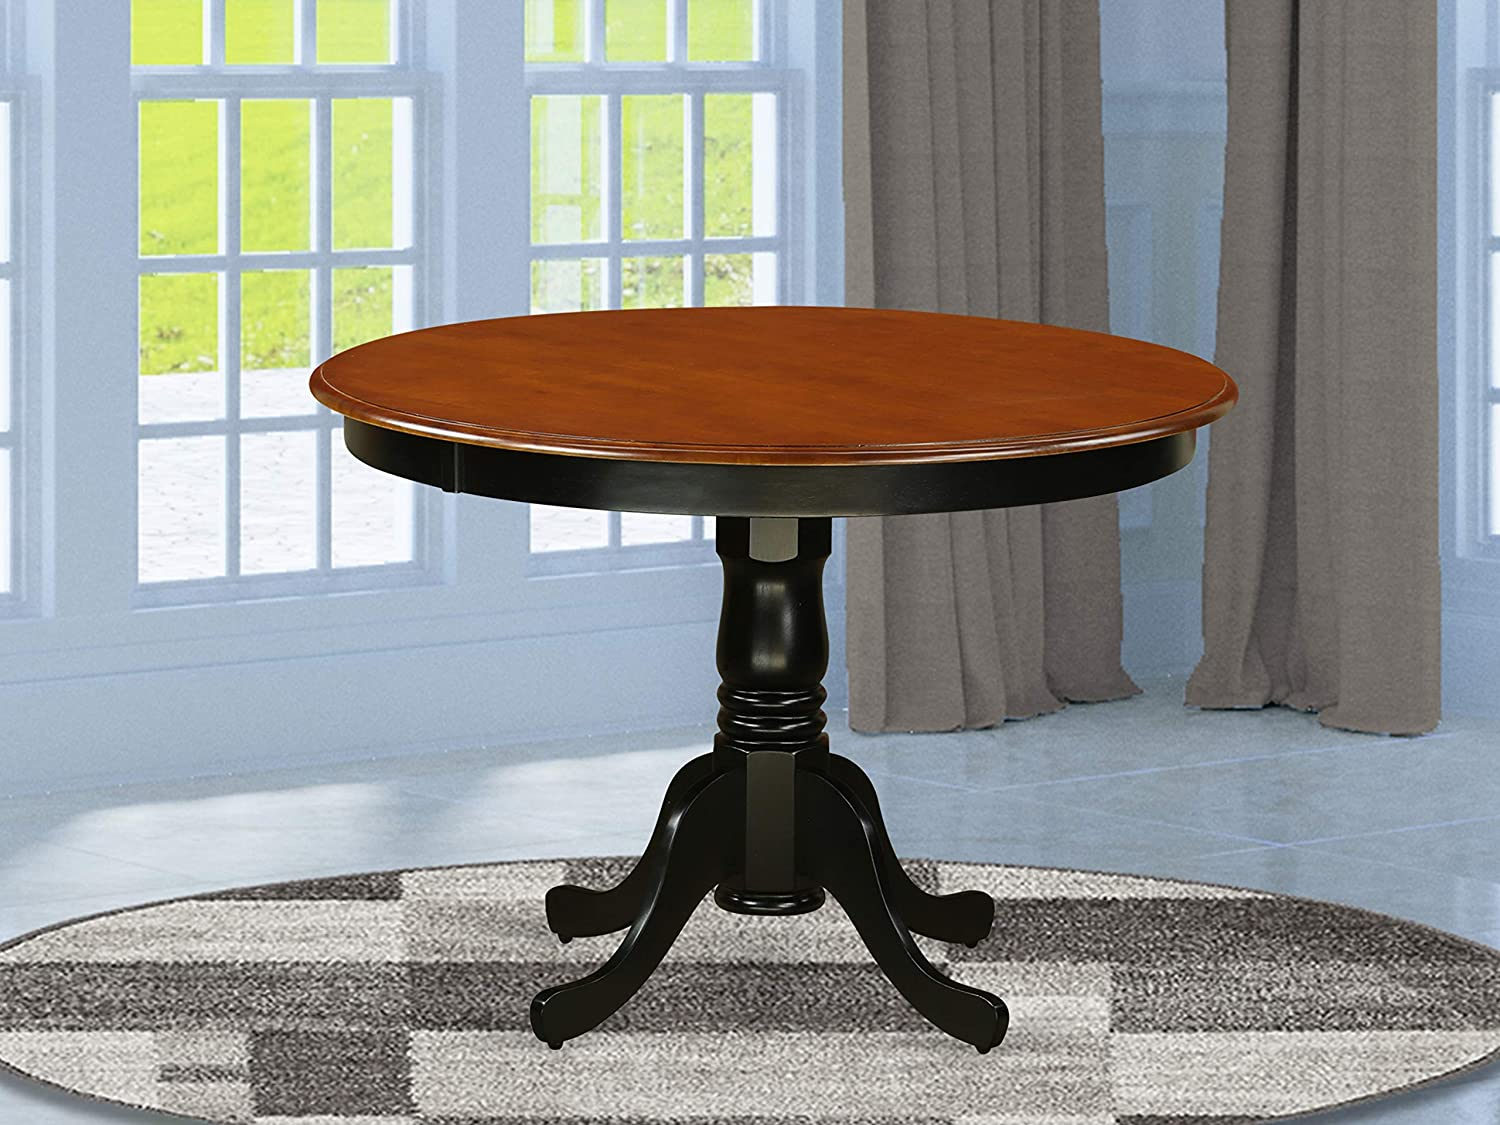 East West Furniture Hartland Dining Room Table-Mahogany Table Top Surface and Black Finish legs Hardwood Frame Modern Dining Table